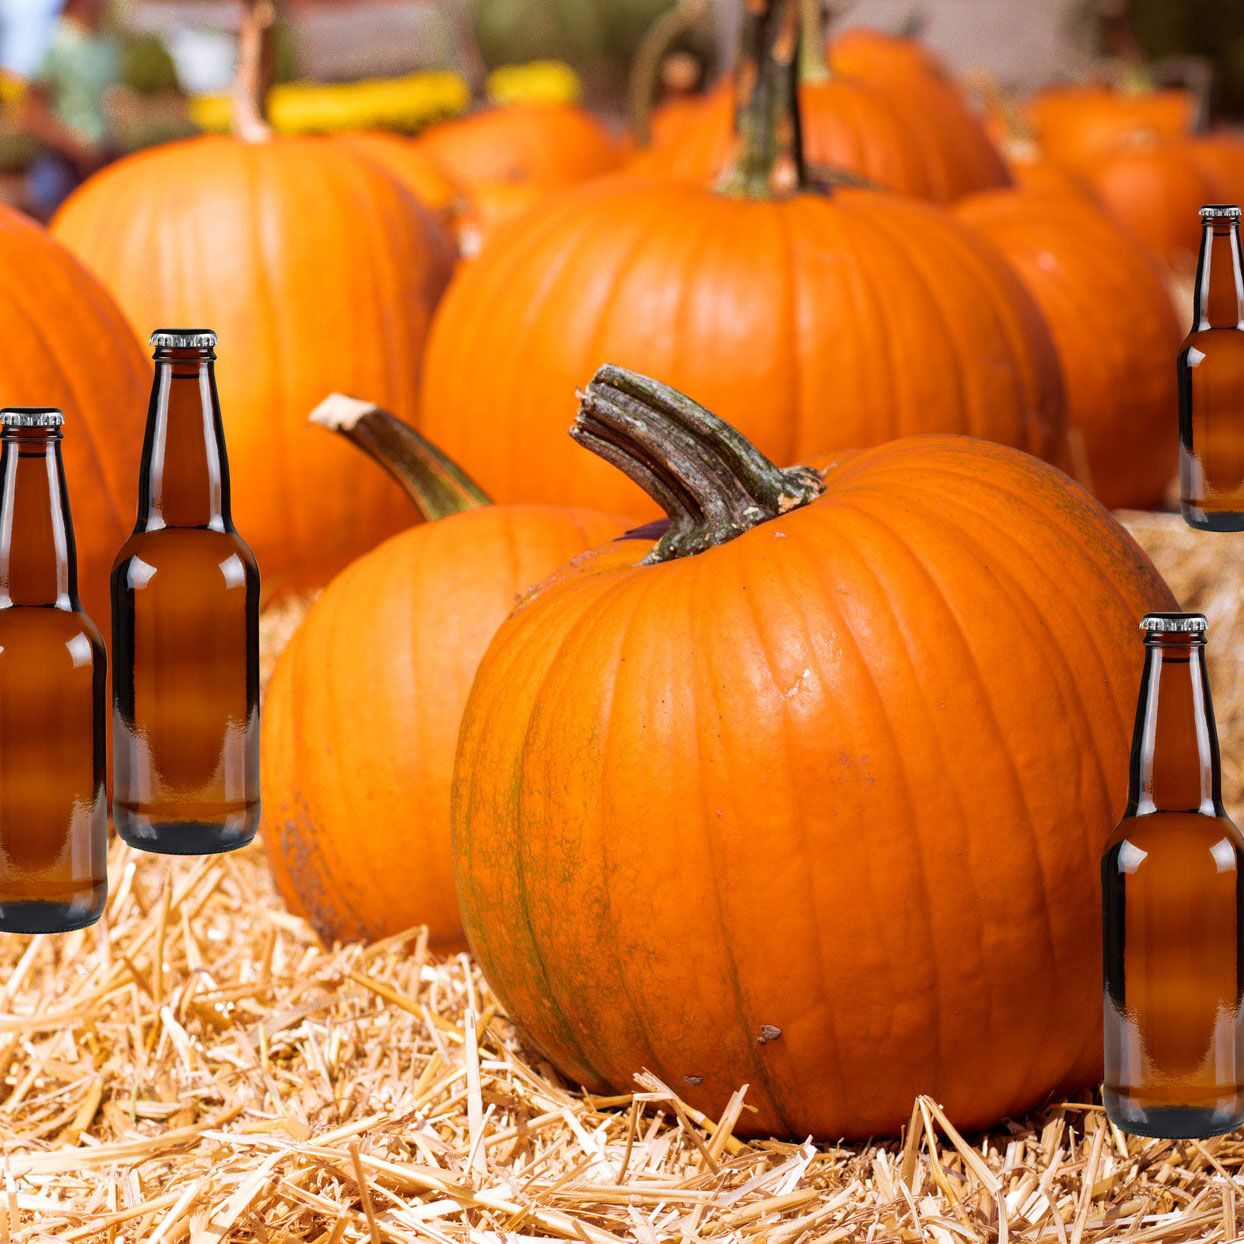 Pumpkins with beer bottles placed around them